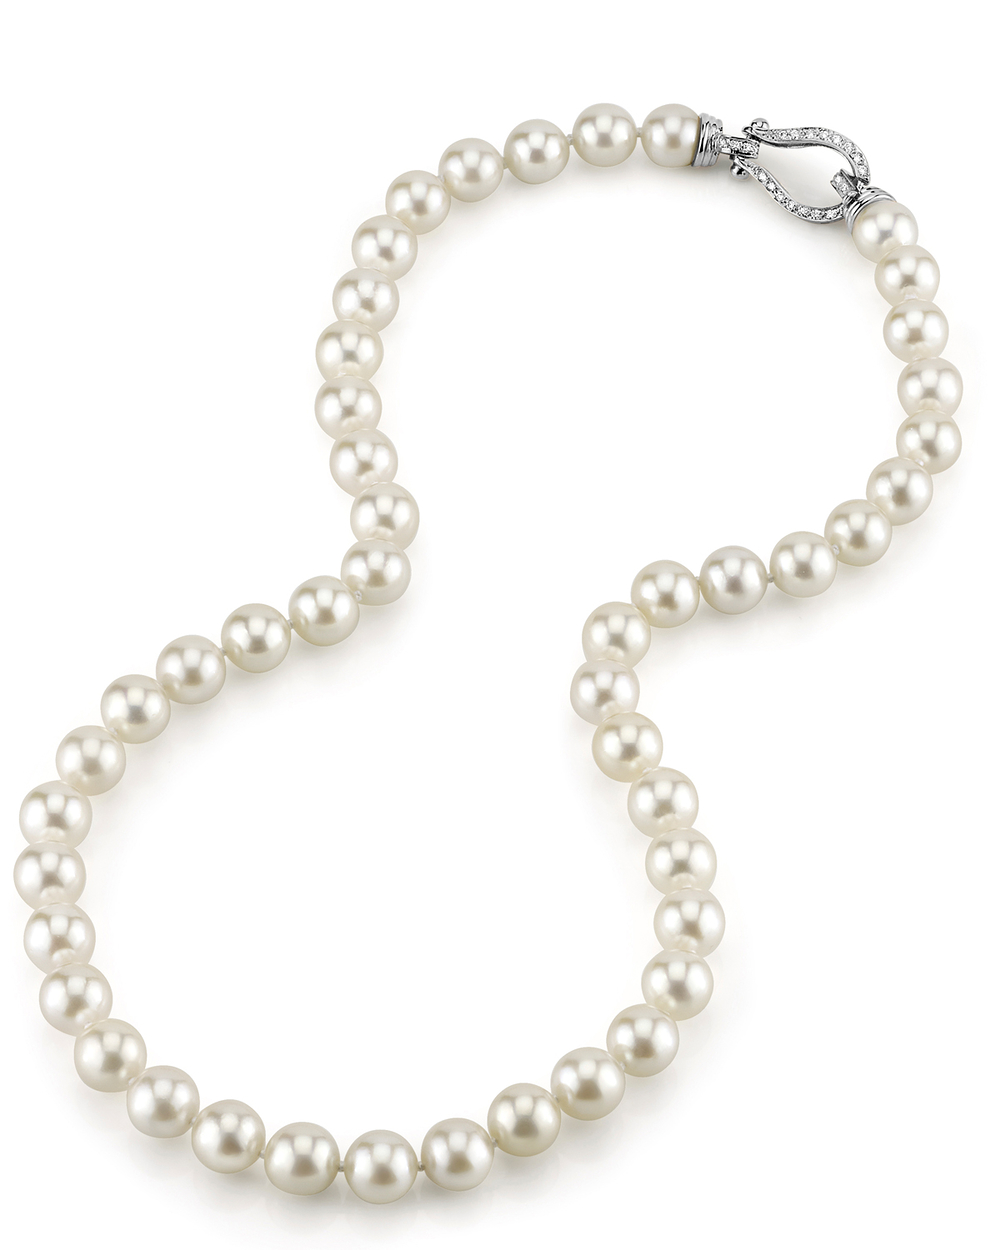 8.5-9.0mm Japanese Akoya White Pearl Necklace- AAA Quality